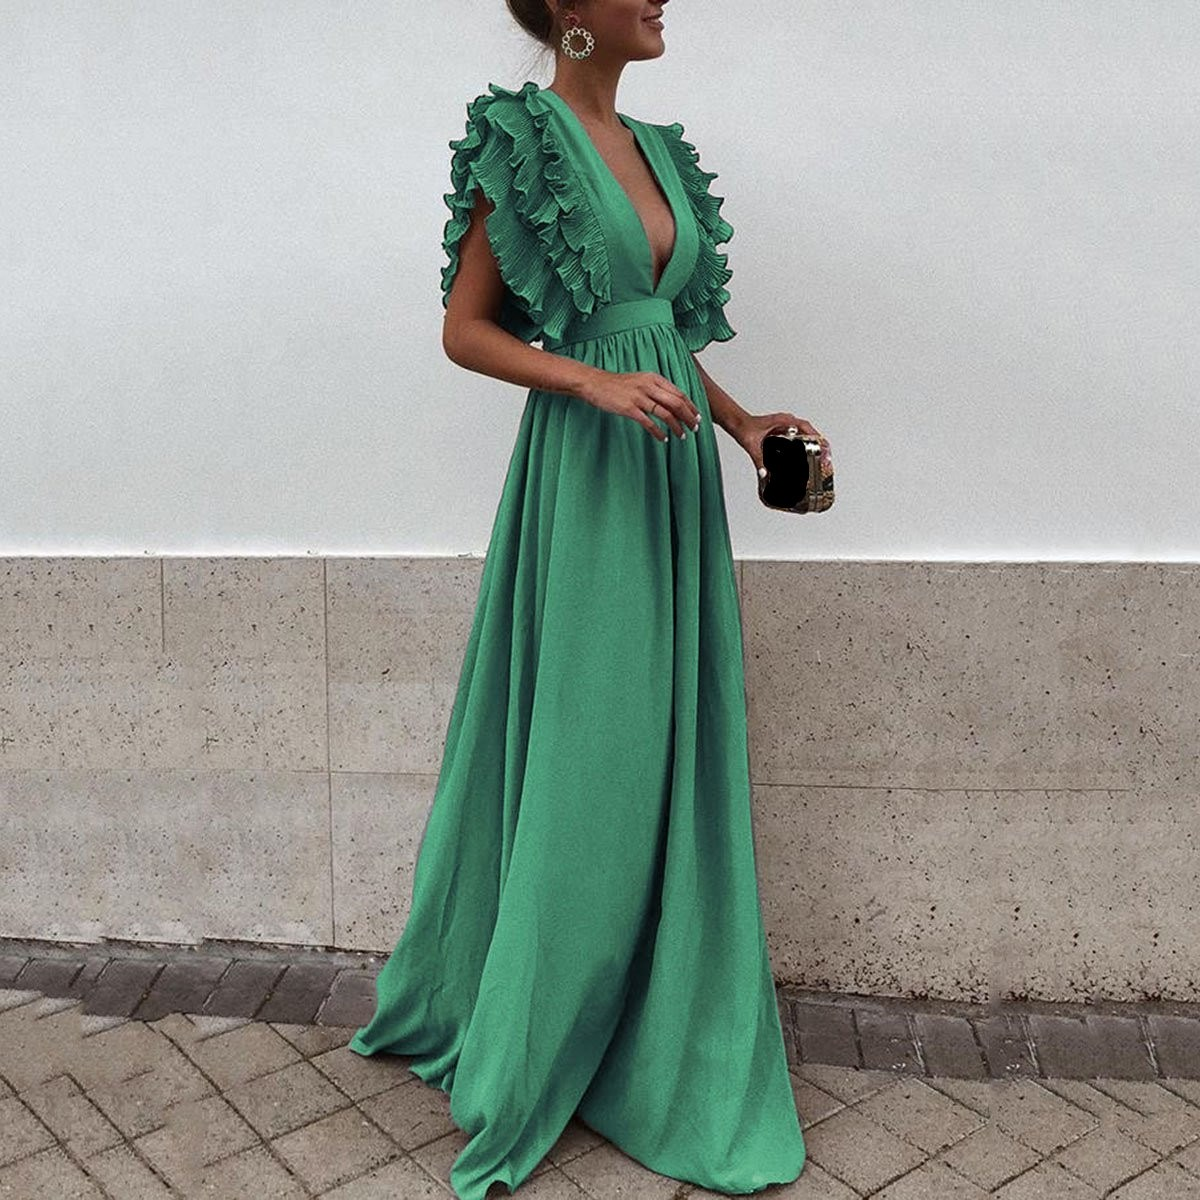 2018 New Fashion Women Deep V-Neck Solid Dress Sexy Backless Maxi Dress Ruffles Sleeves Party Beach Long Dress